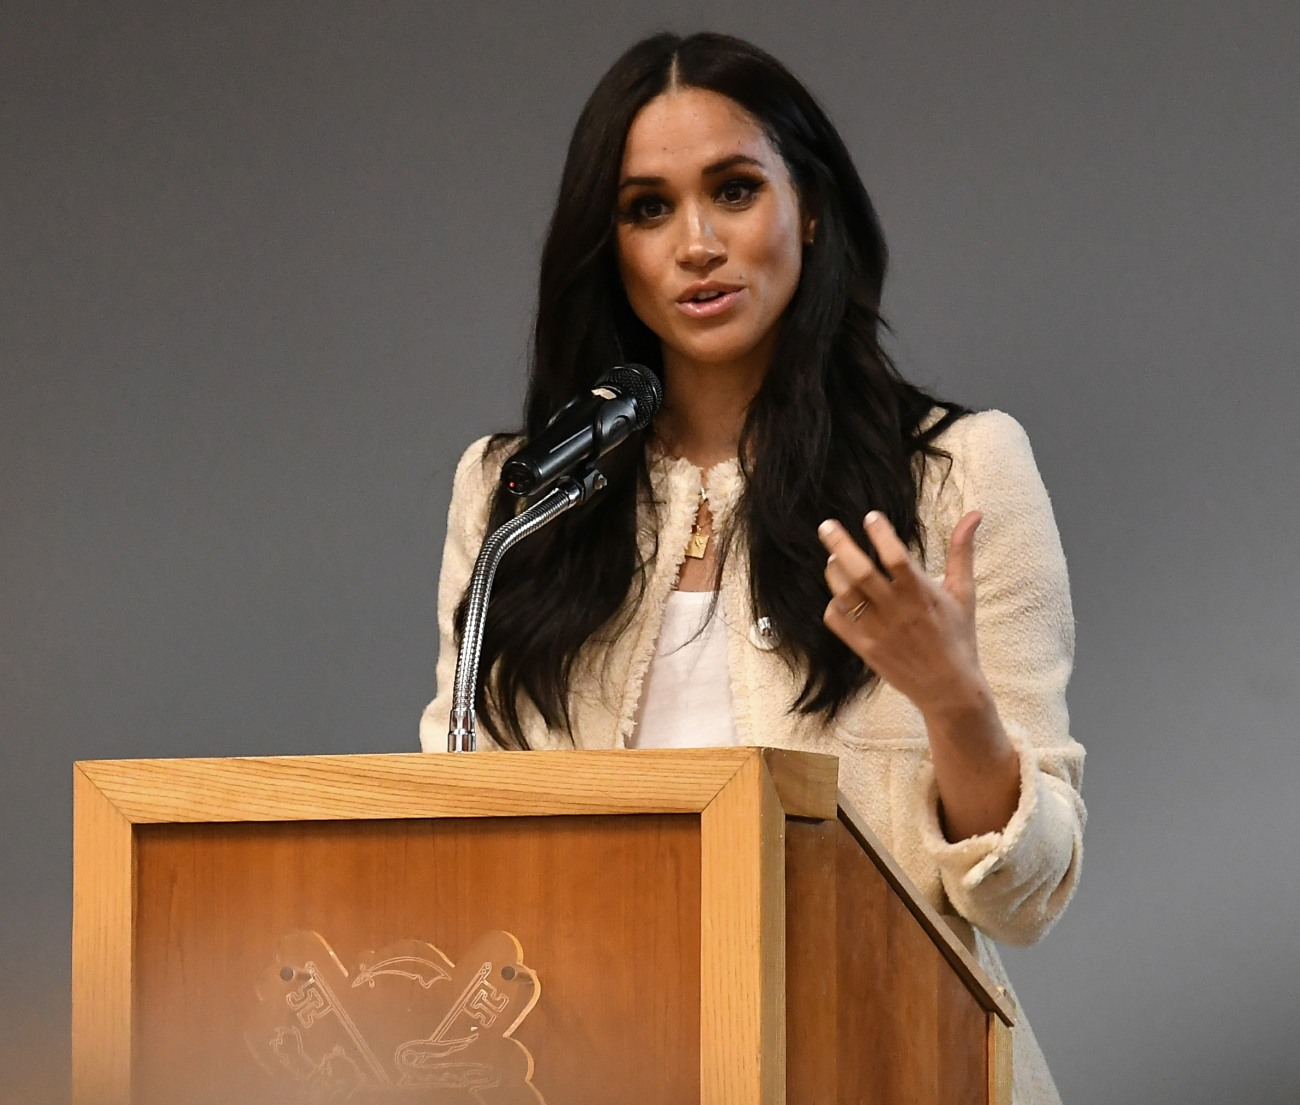 Britain's Meghan, Duchess of Sussex speaks during a school assembly as part of a visit to Robert Clack School in Essex, on March 6, 2020, in support of International Women's Day.  / == STRICTLY EMBARGOED == NO USE AND NO PUBICATION ON ANY PLATFORM UNTIL 22:30 GMT MARCH 7, 2020 ==